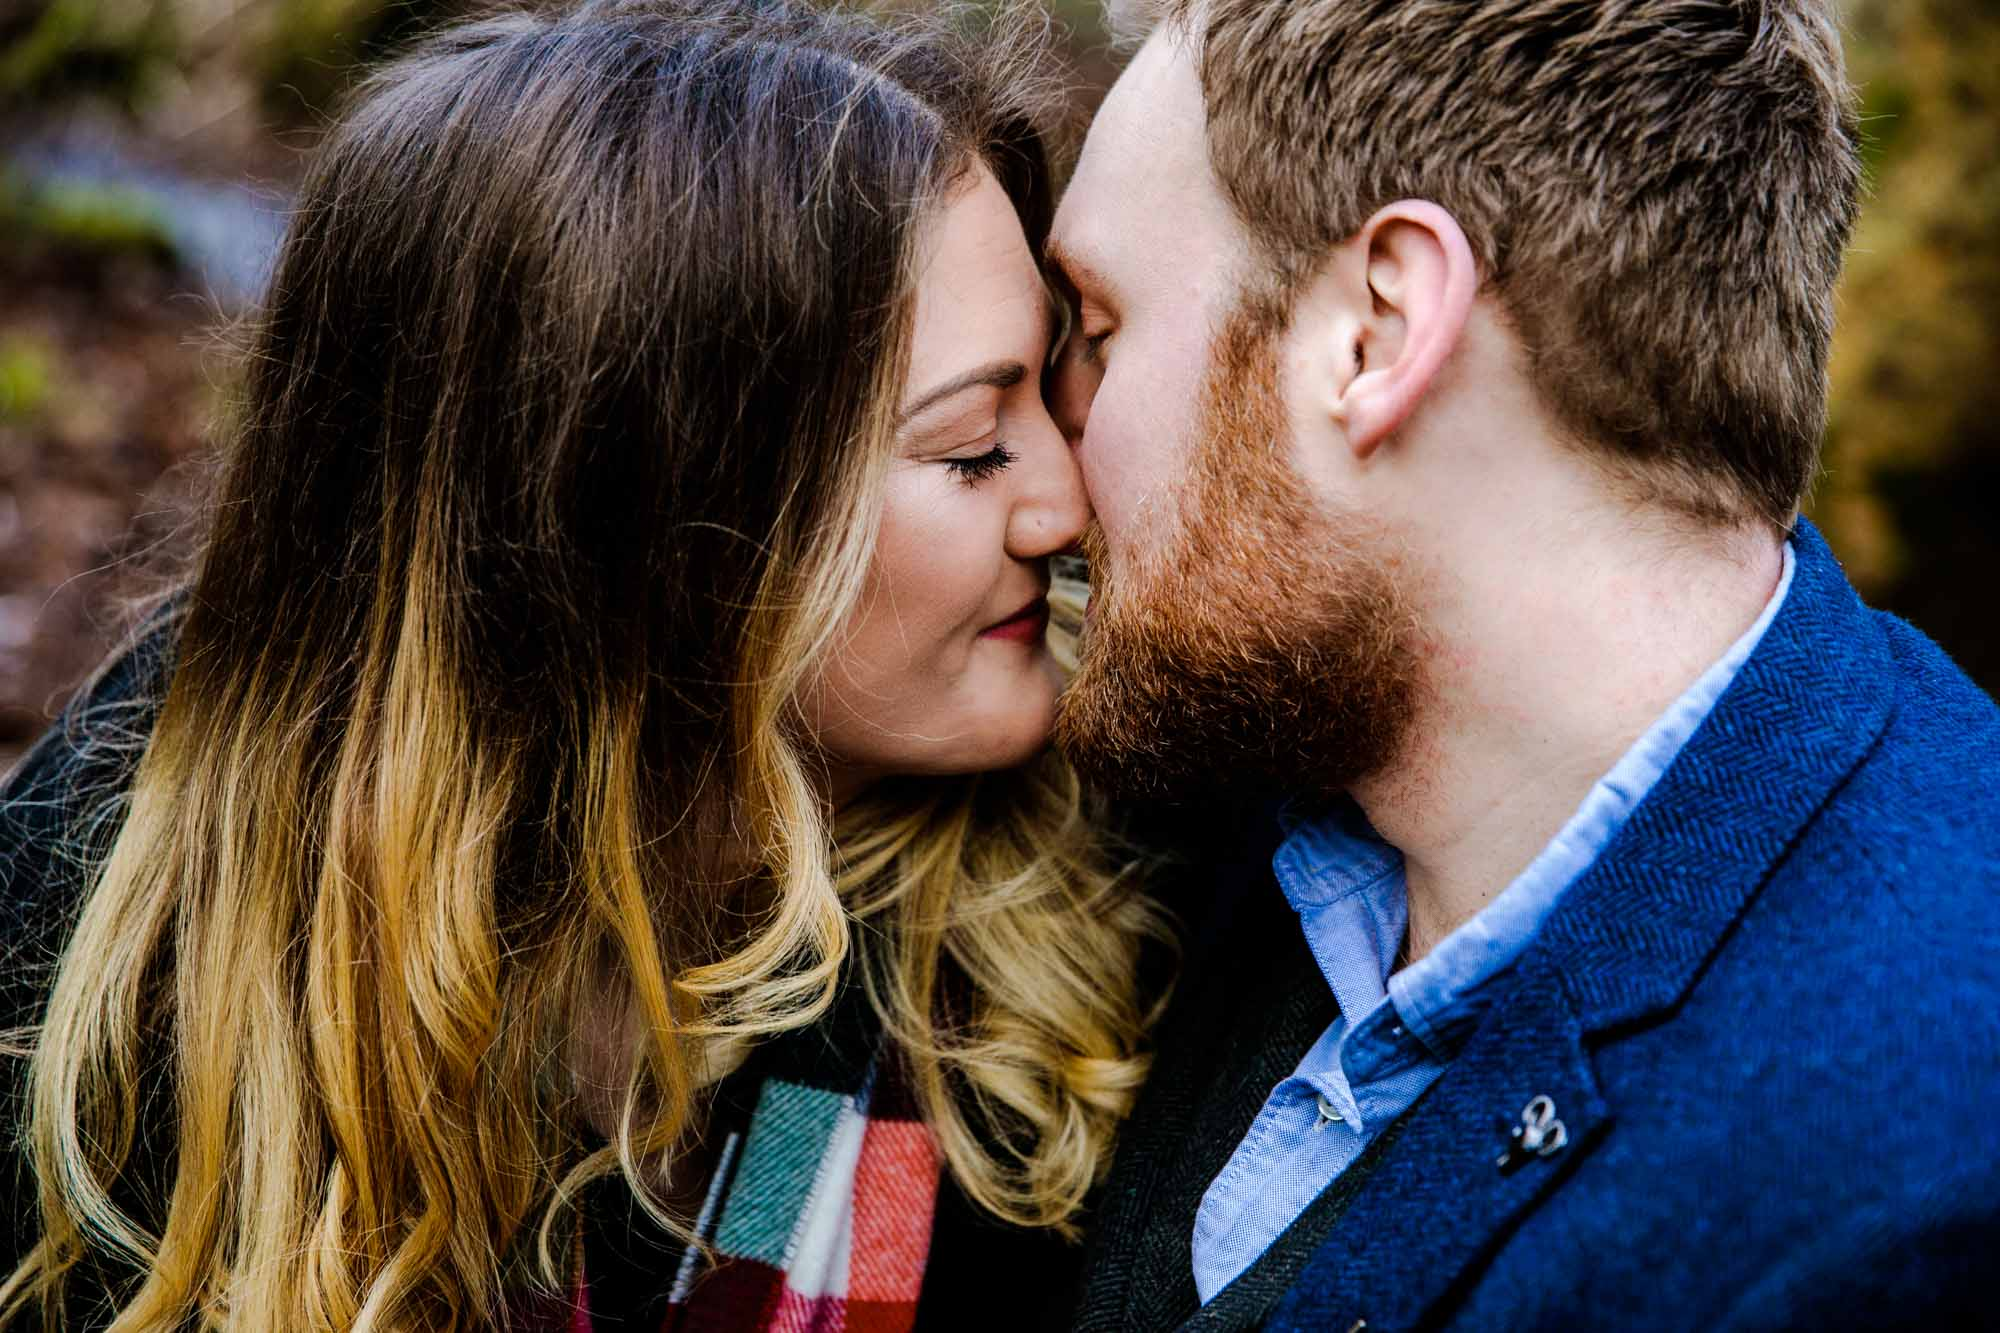 Fletcher Moss Engagement Shoot